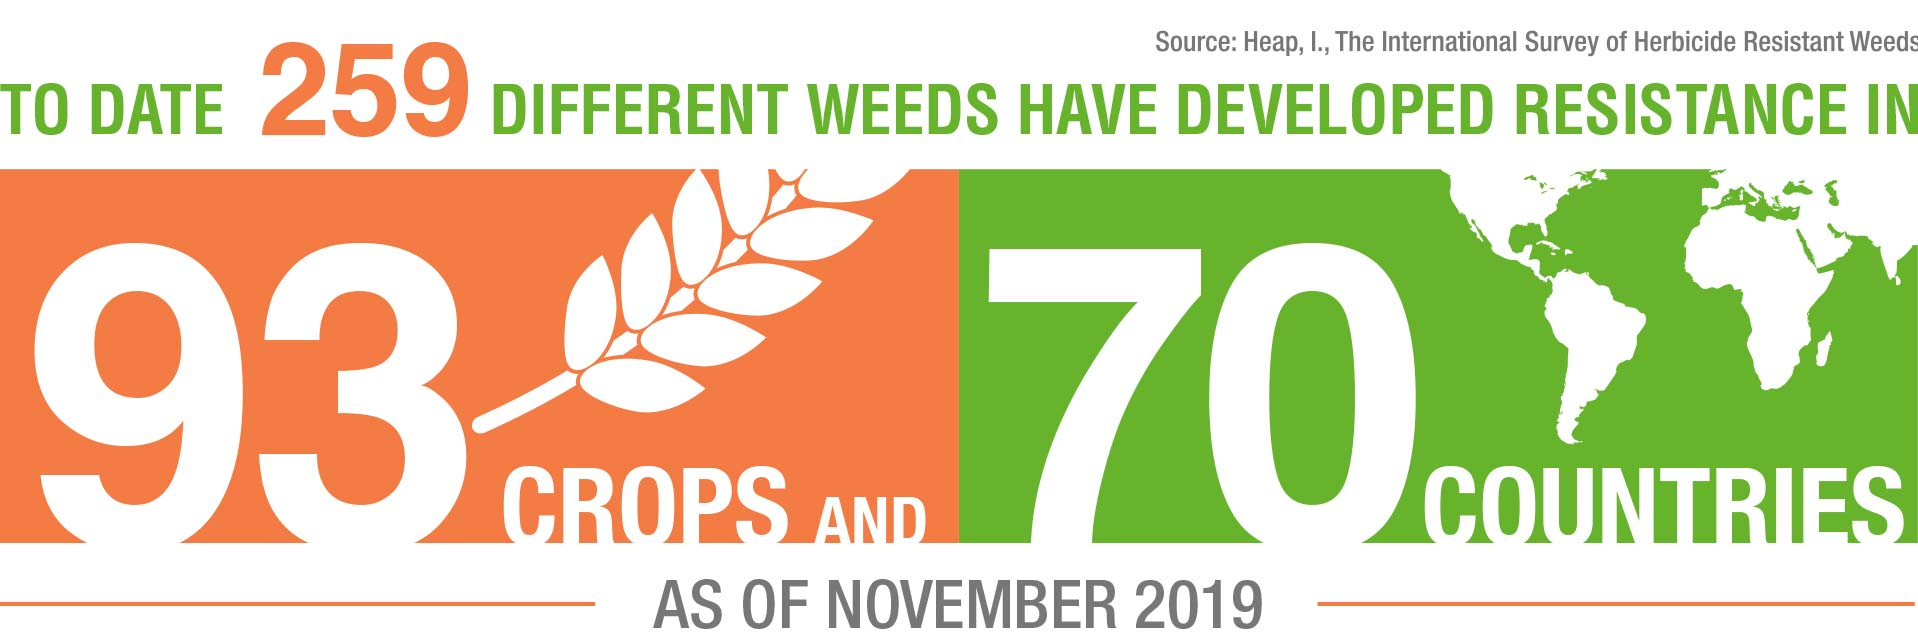 Till August 2018 about 255 different weeds have developed resistance in 92 crops.